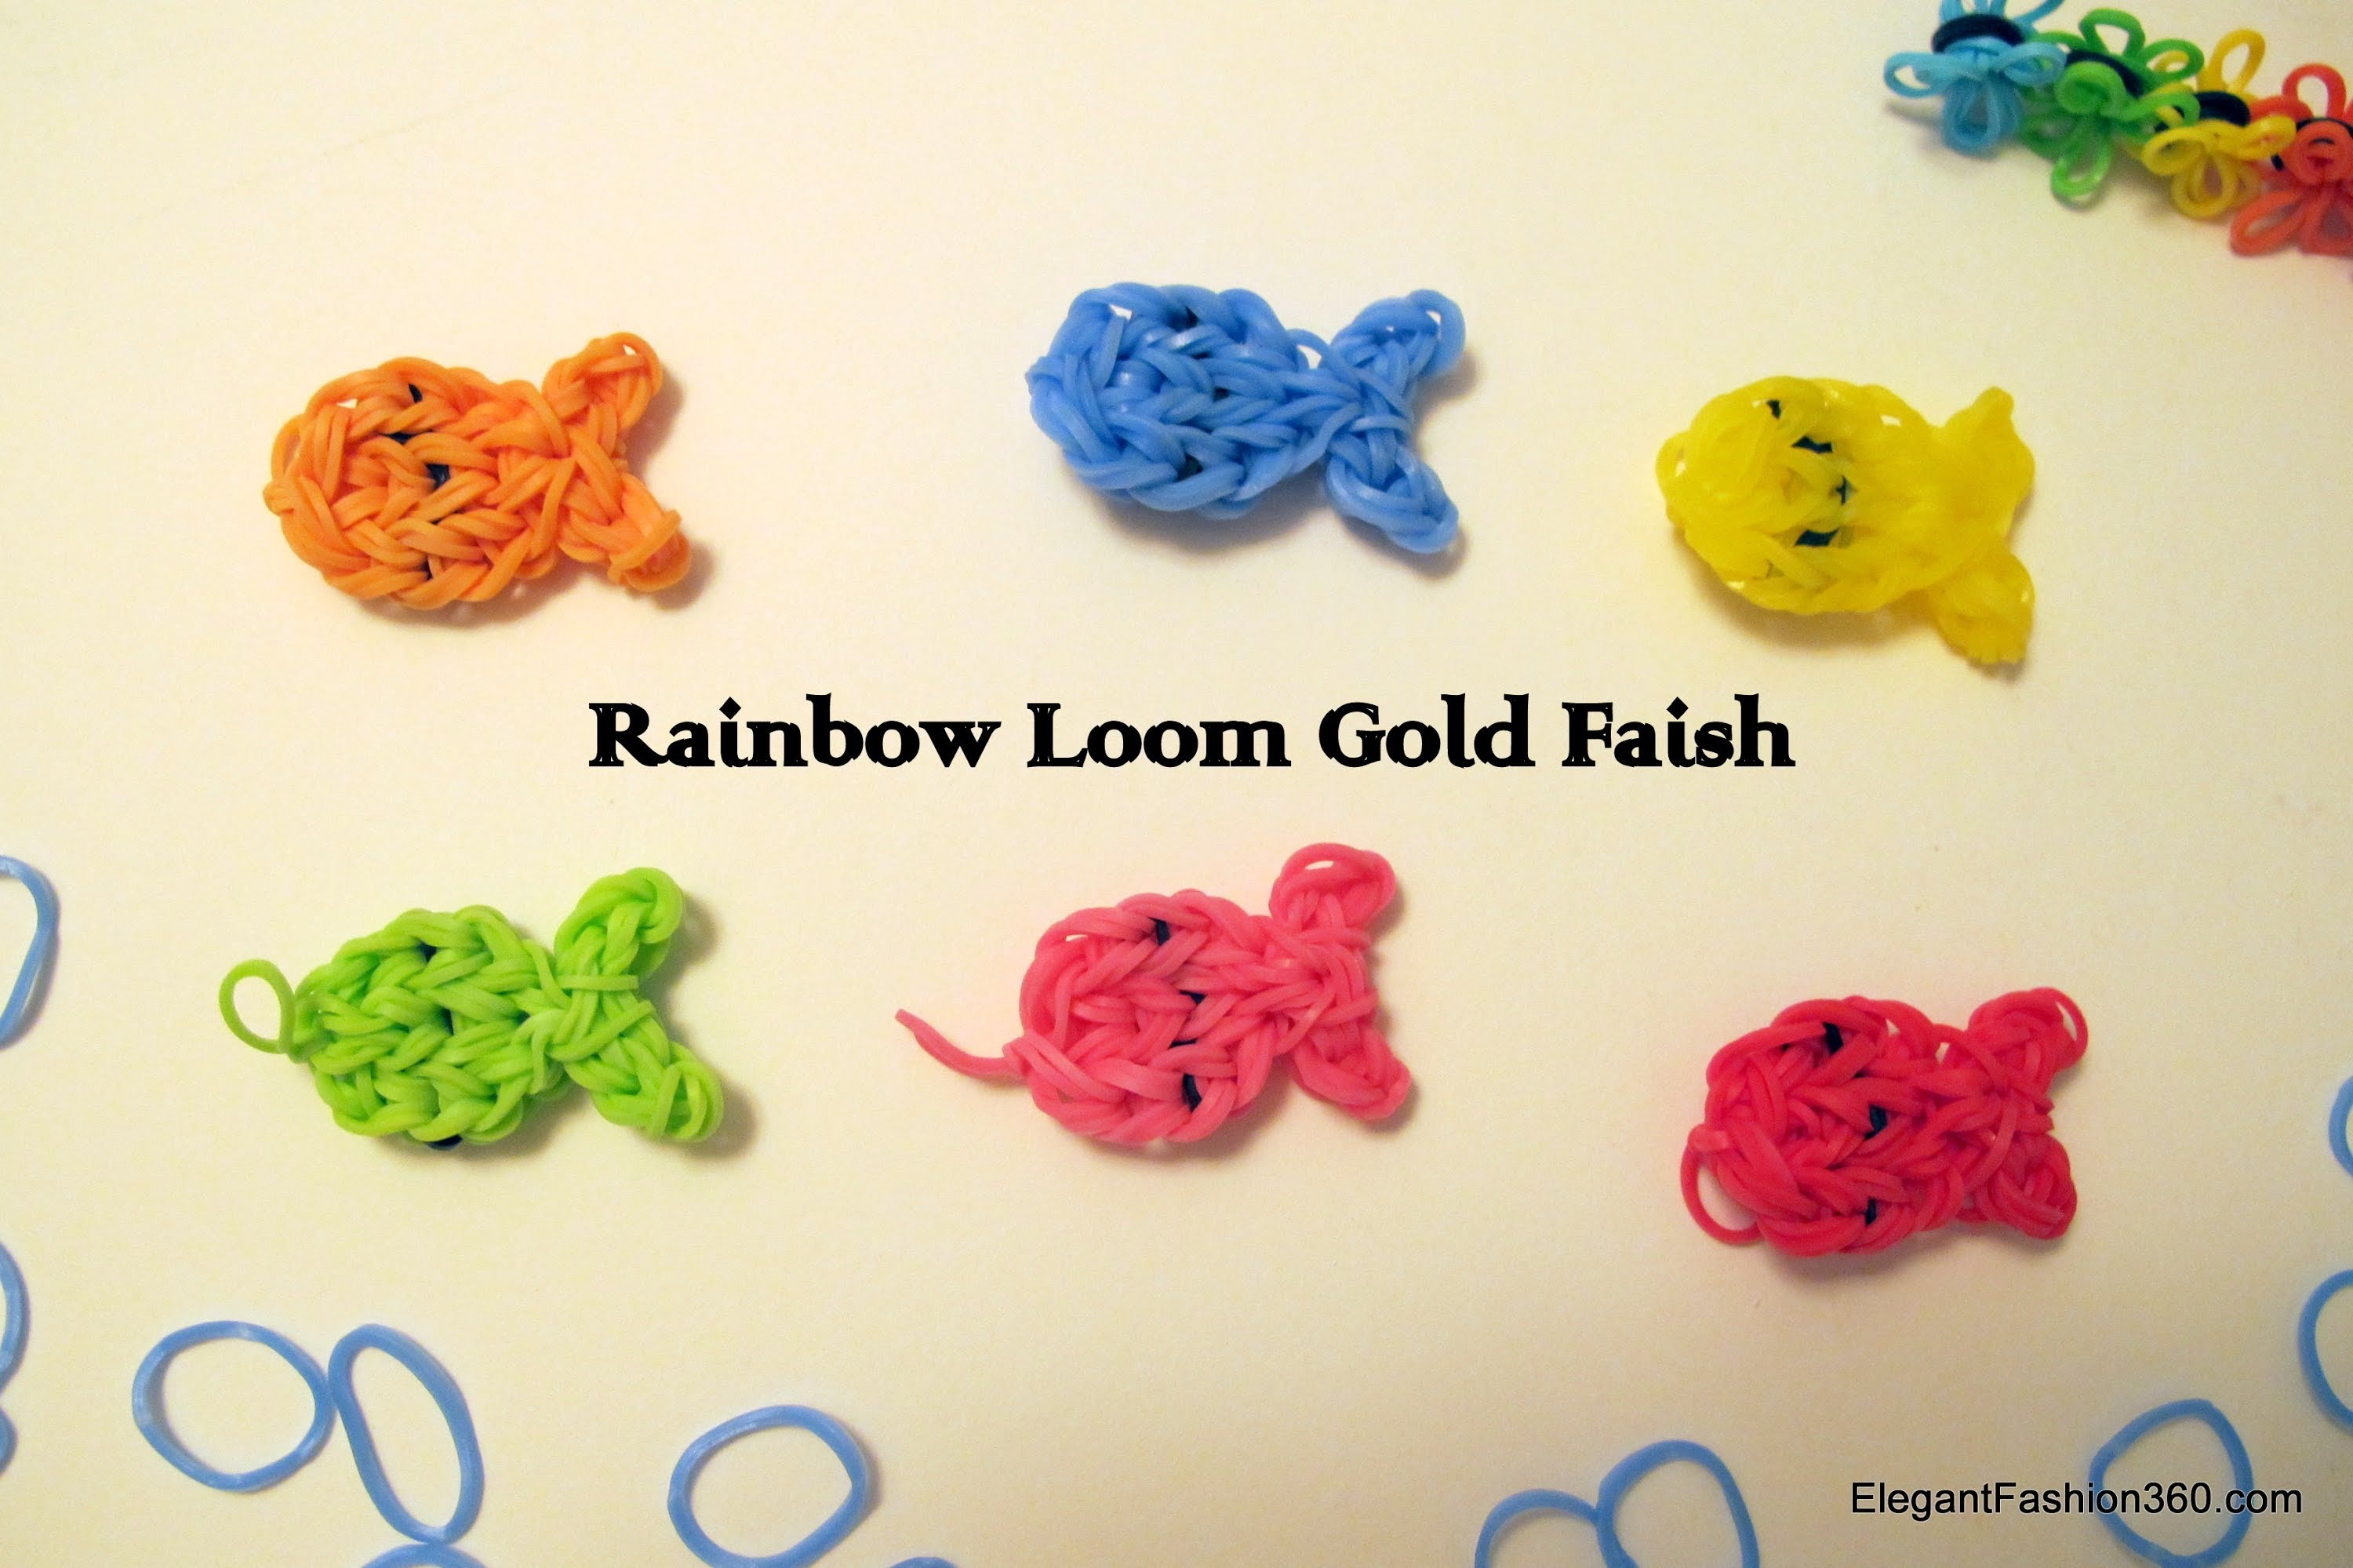 Rainbow Loom Goldfish Charm